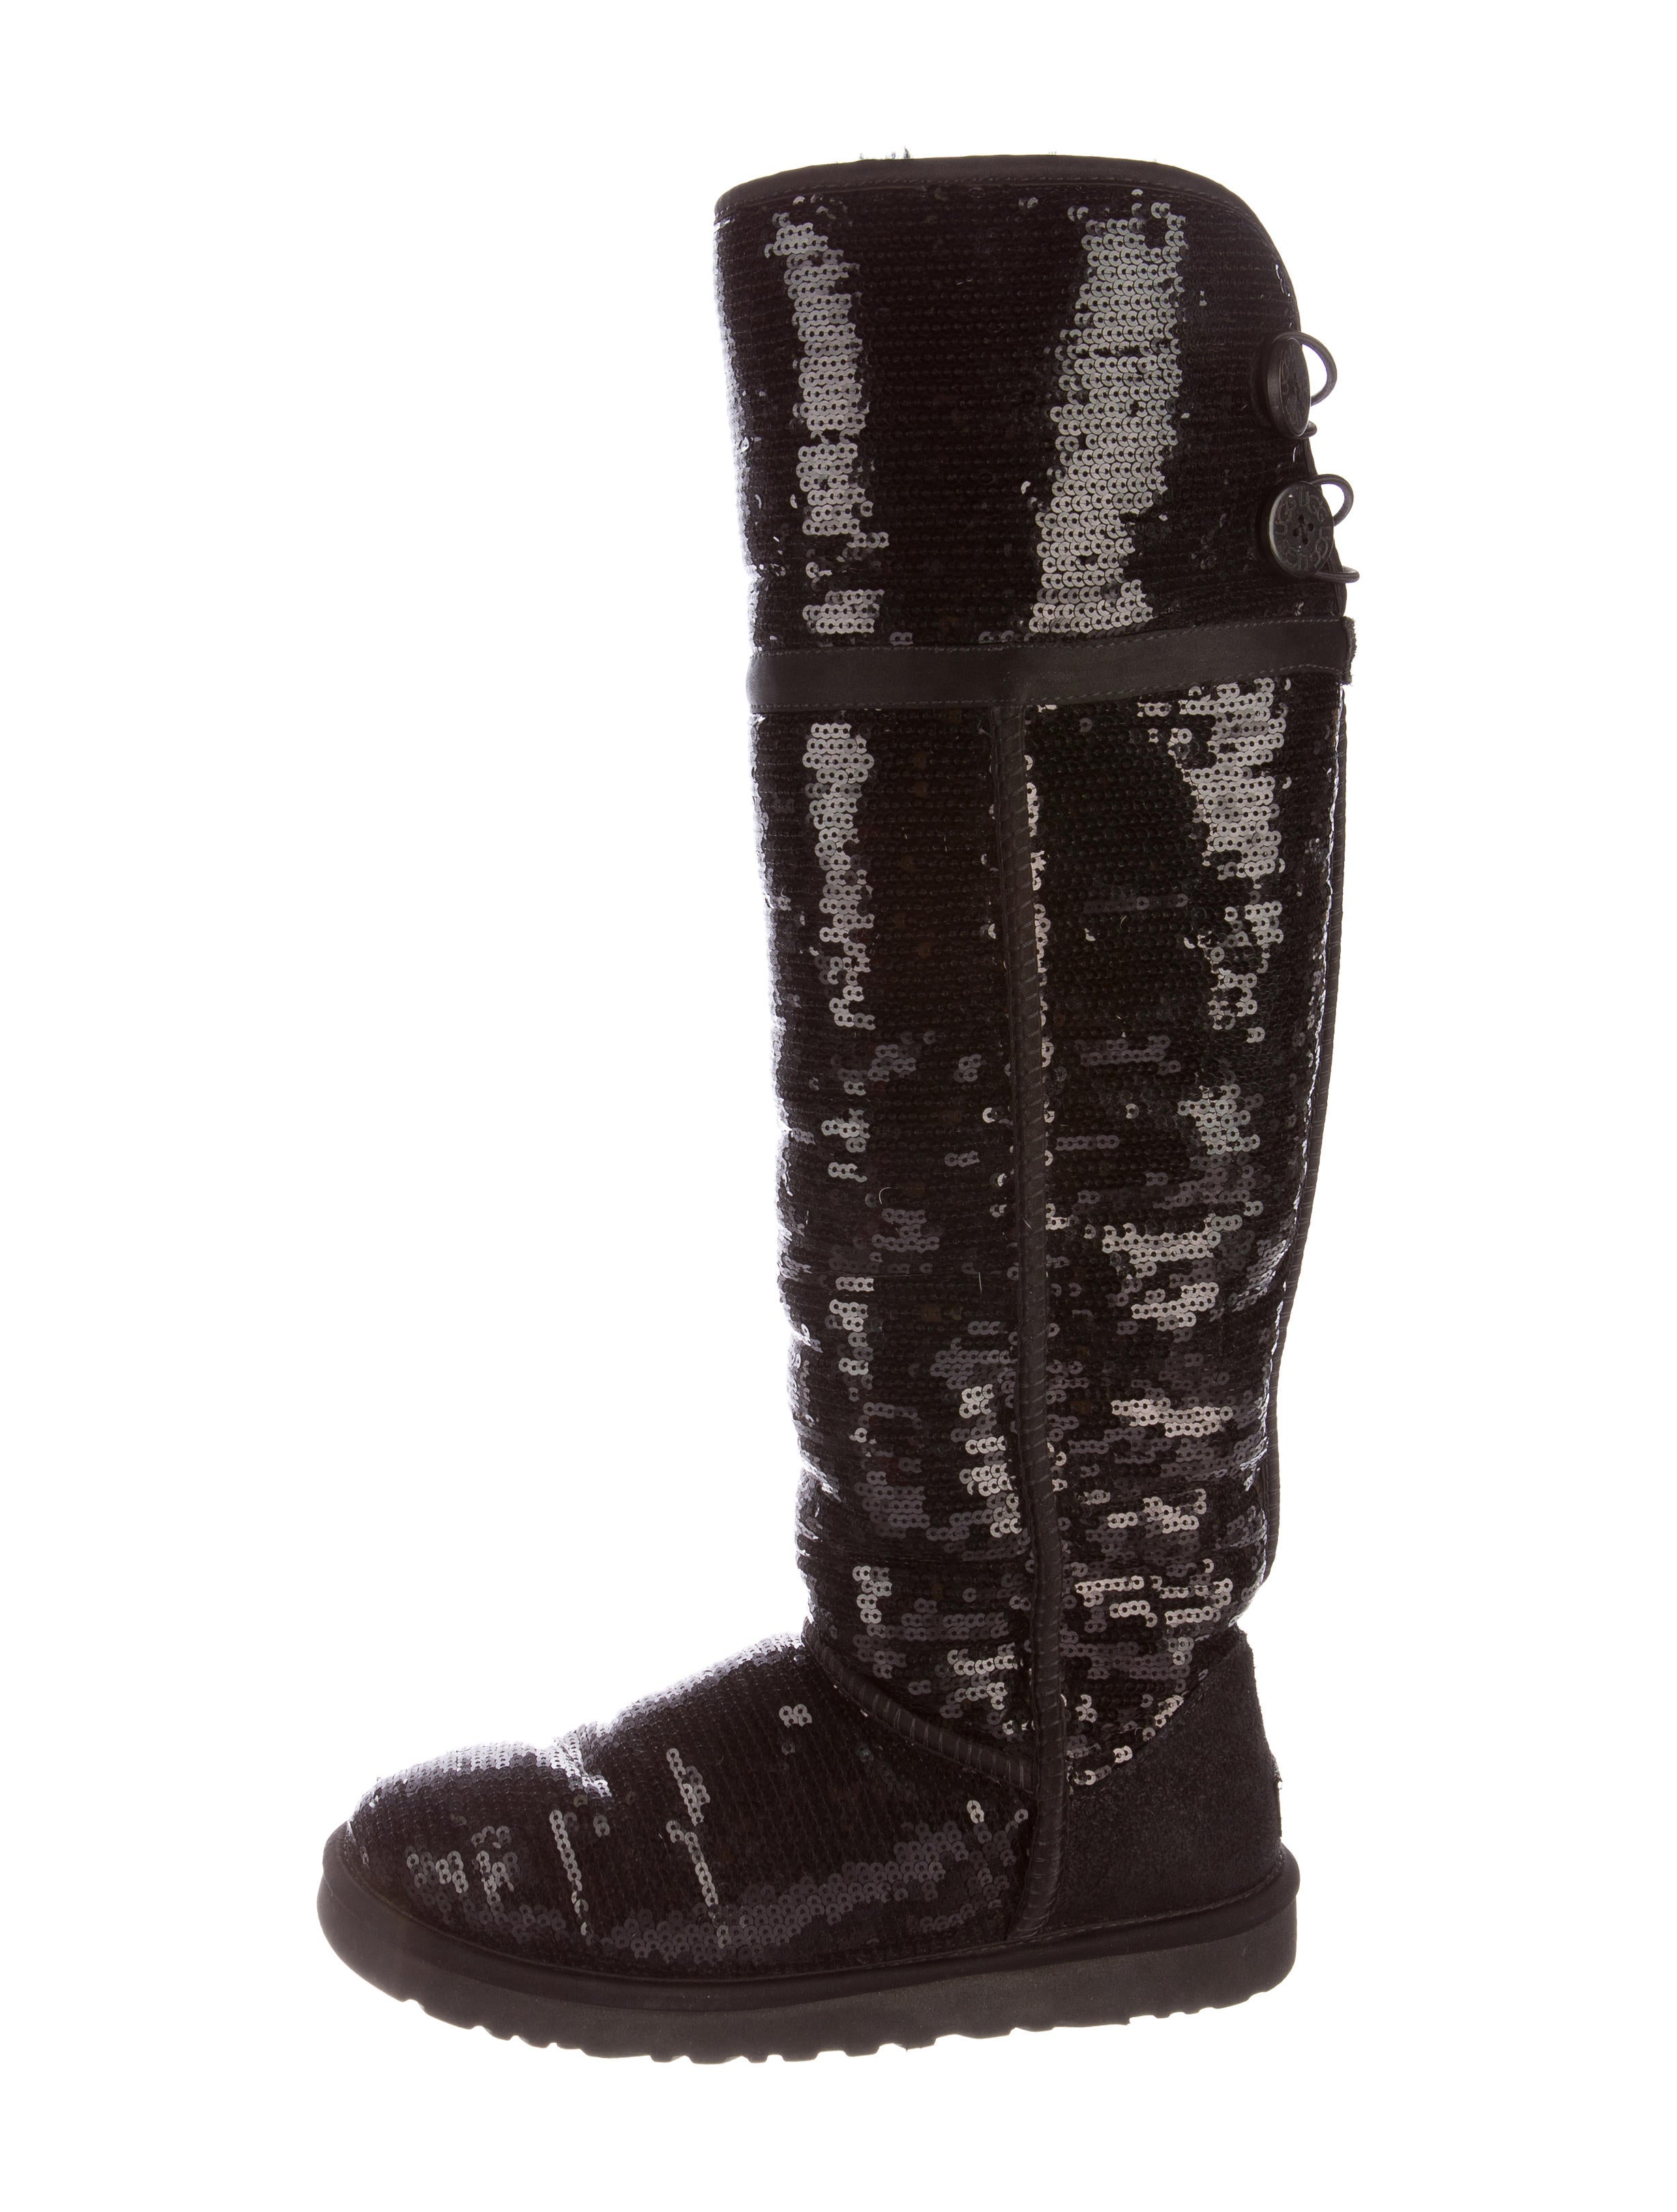 6eca4a61cc0 Over The Knee Sequin Ugg Boots